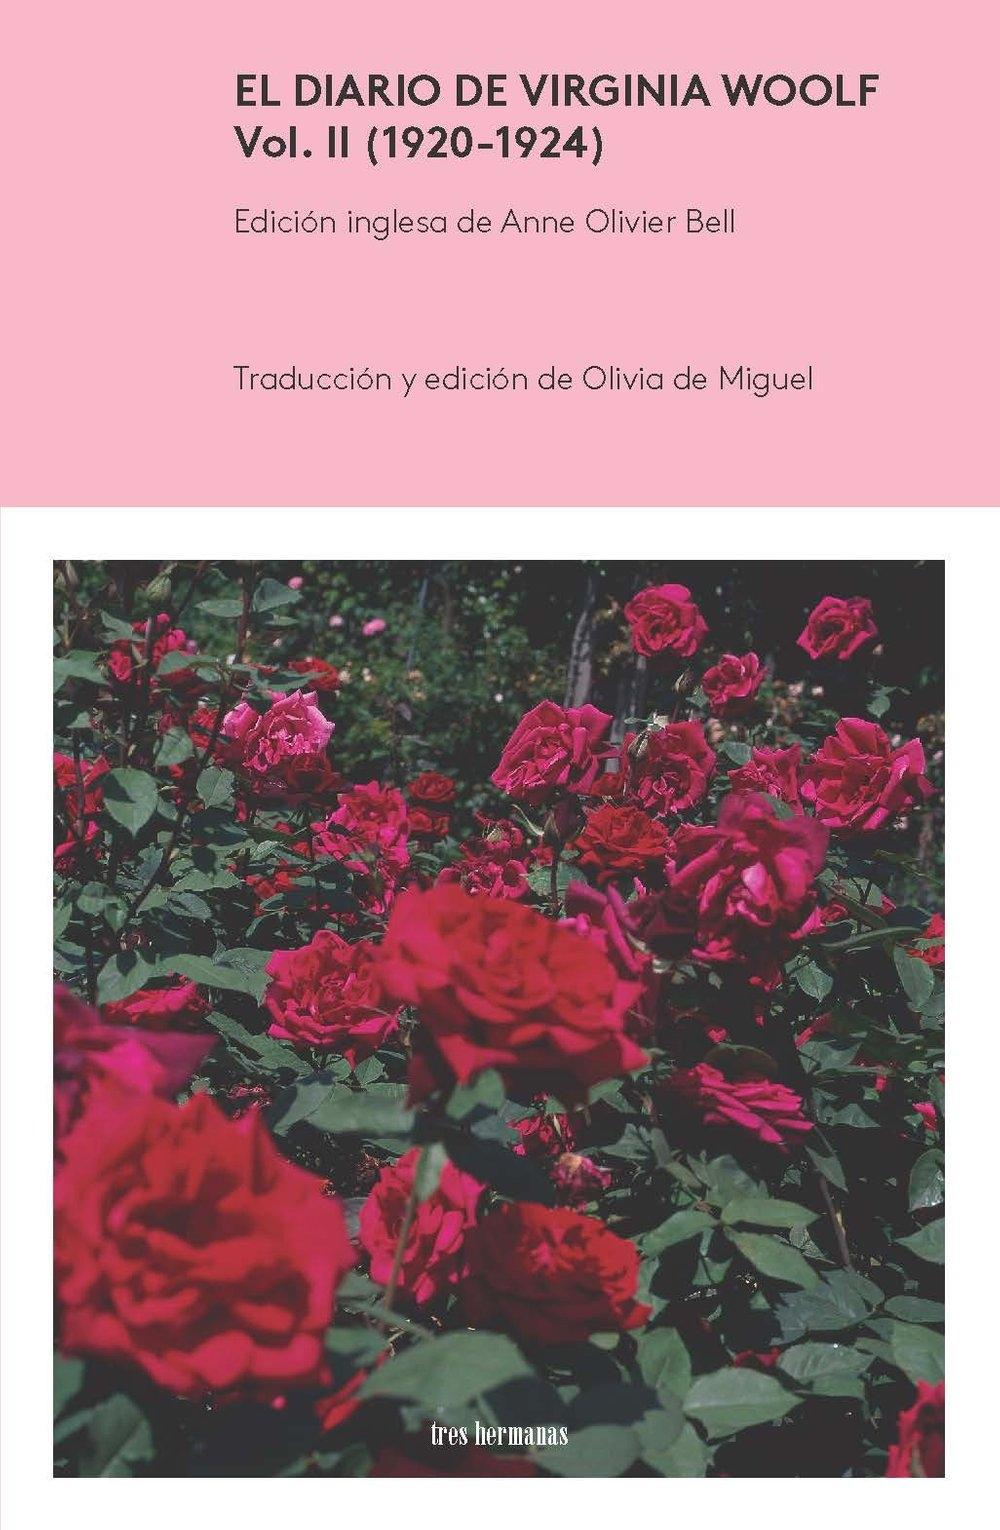 El diario de Virginia Woolf  - Vol. II: (1920-1924)